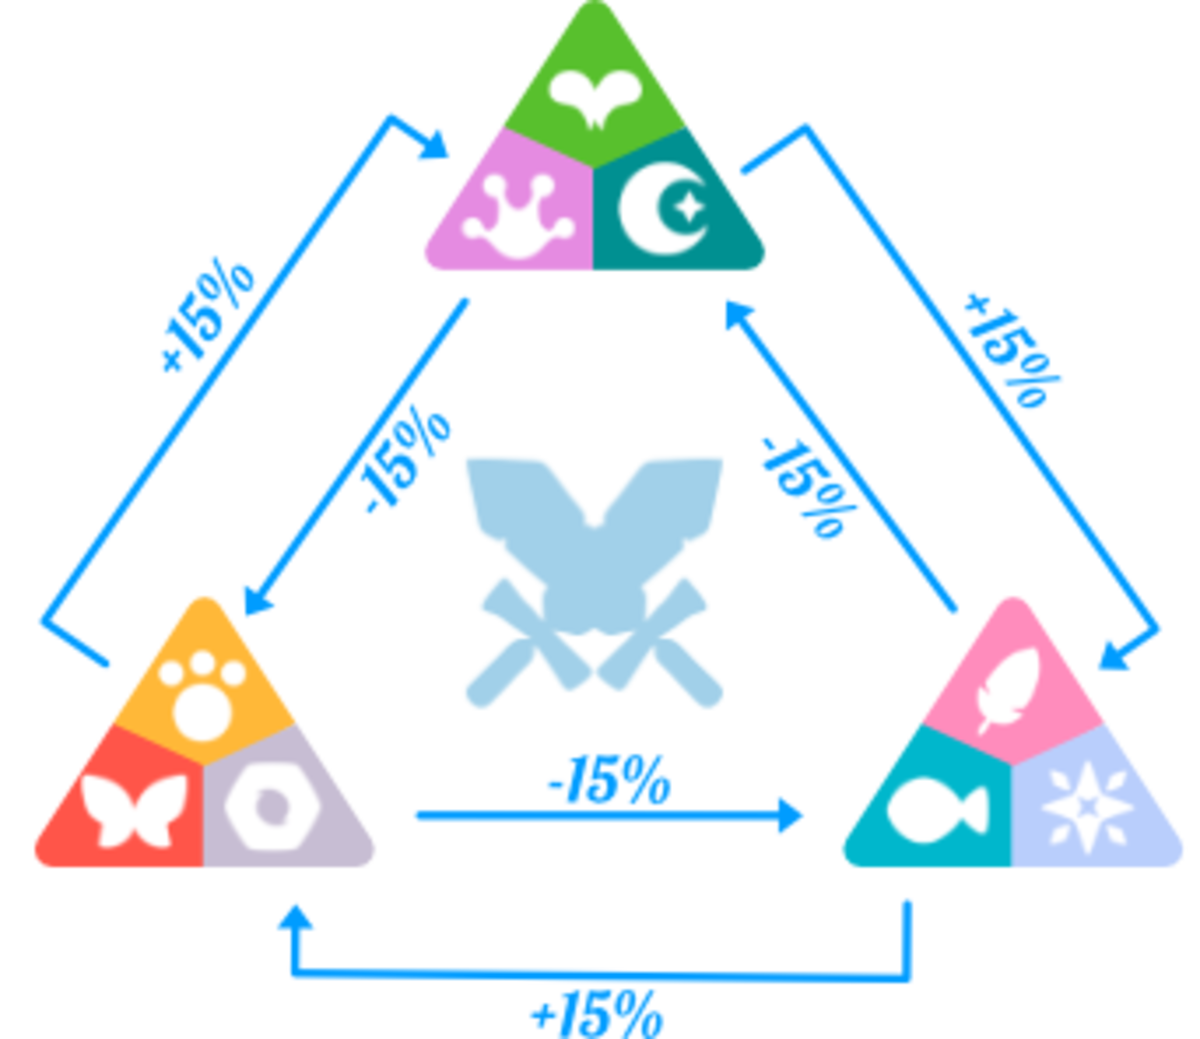 The 9 Axie classes can be divided into 3 groups based on their relative affinities toward one another.